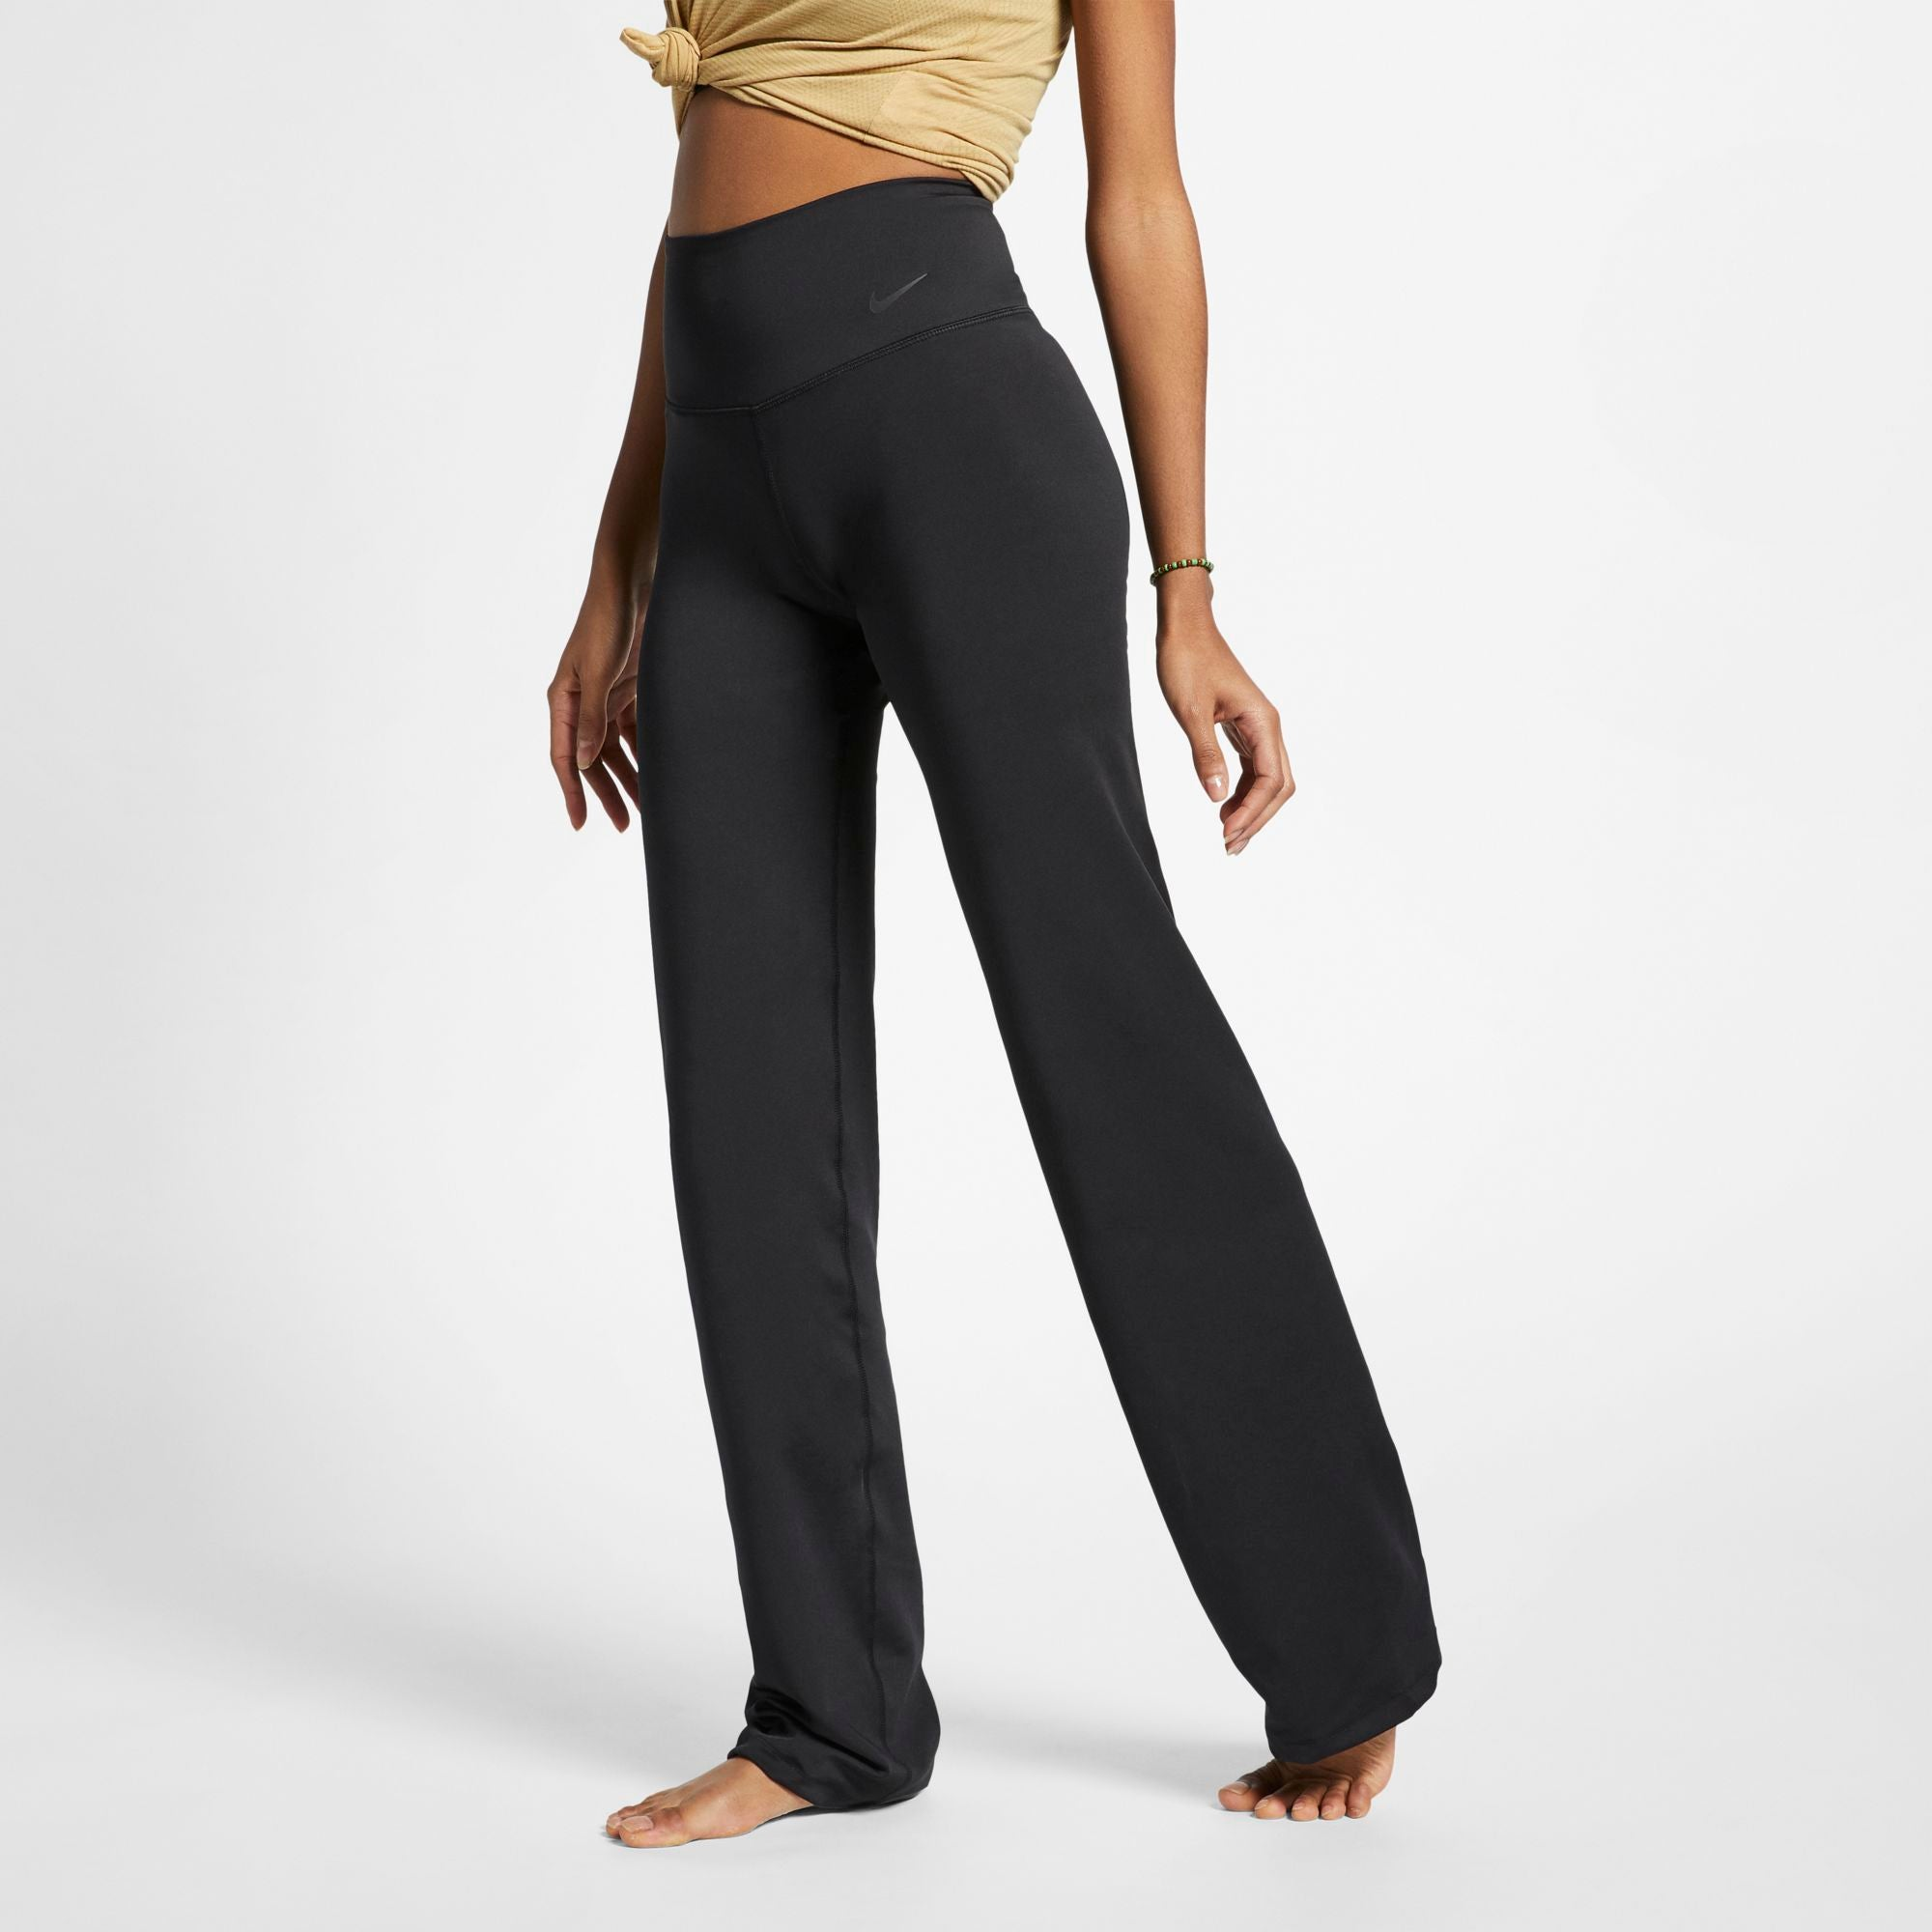 Nike Womens Power Training Pants - Black